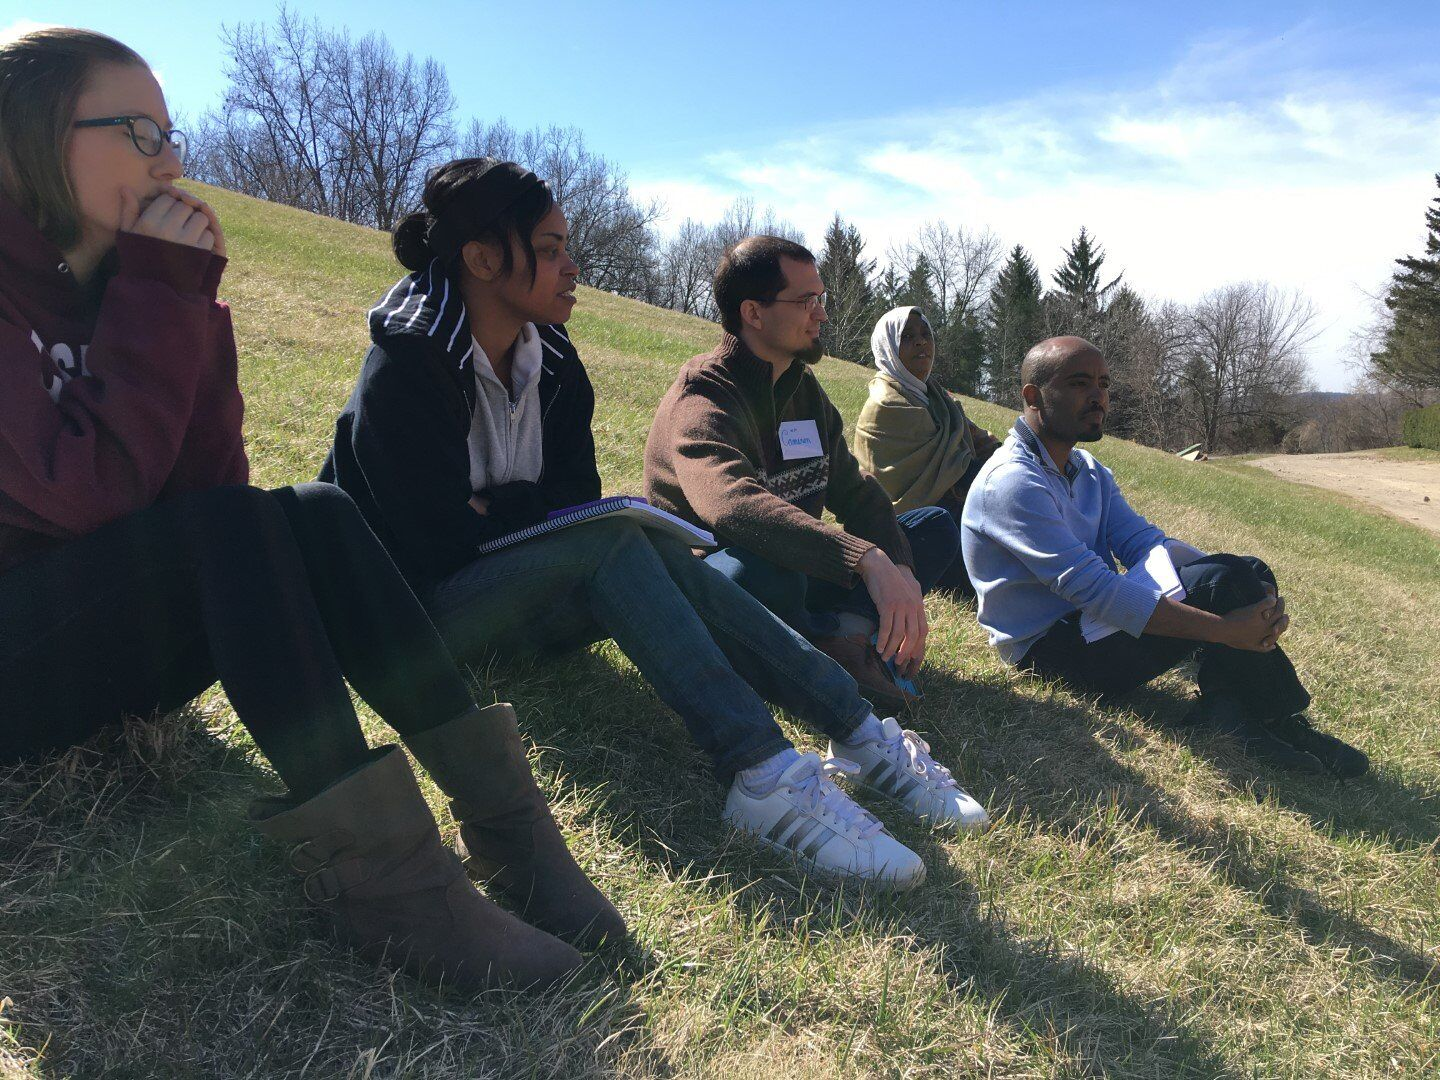 The weather was great on the last day, so we moved the classroom outside.